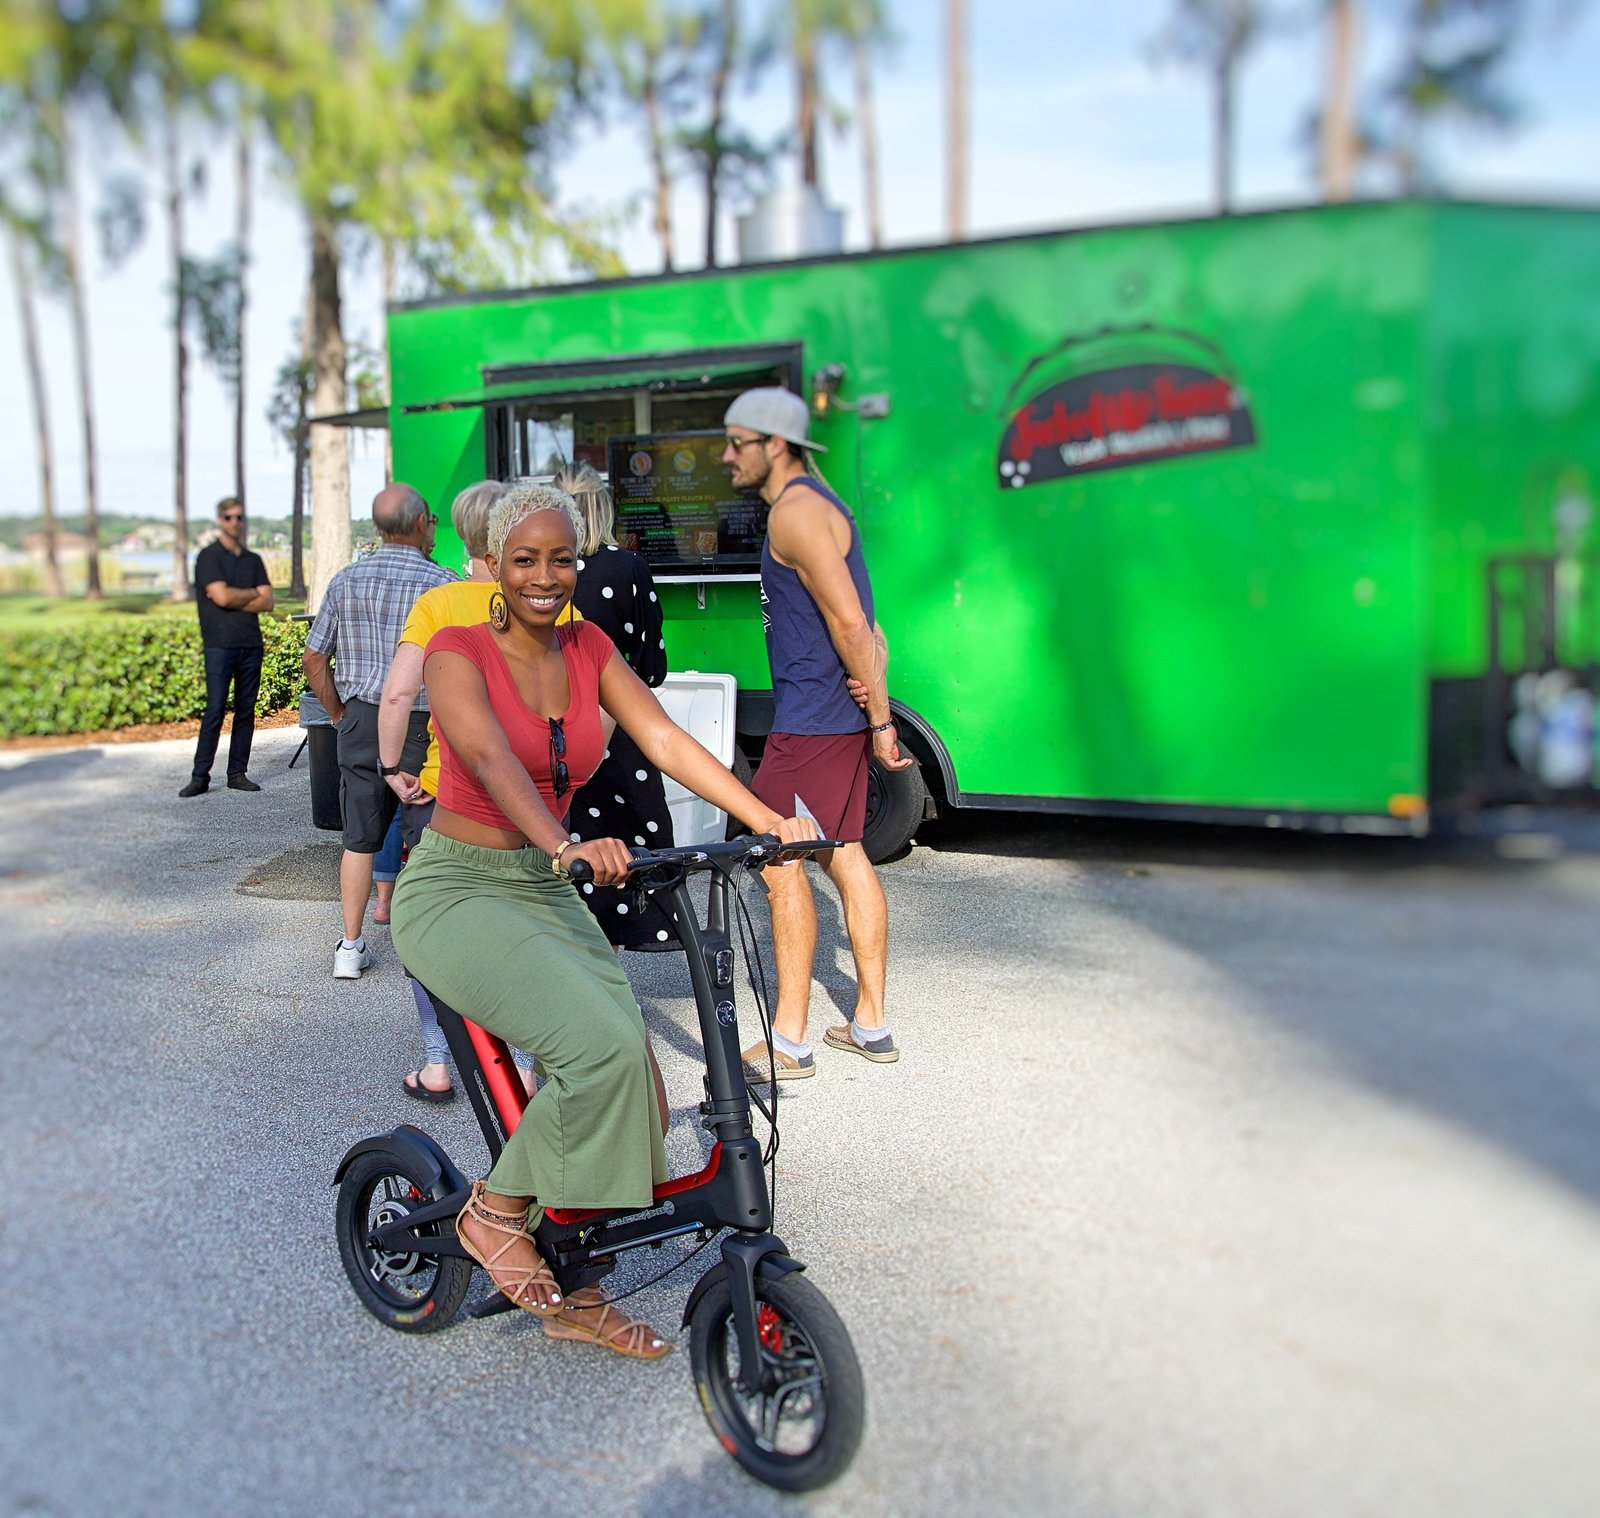 Red Go-Bike M3 with green food truck